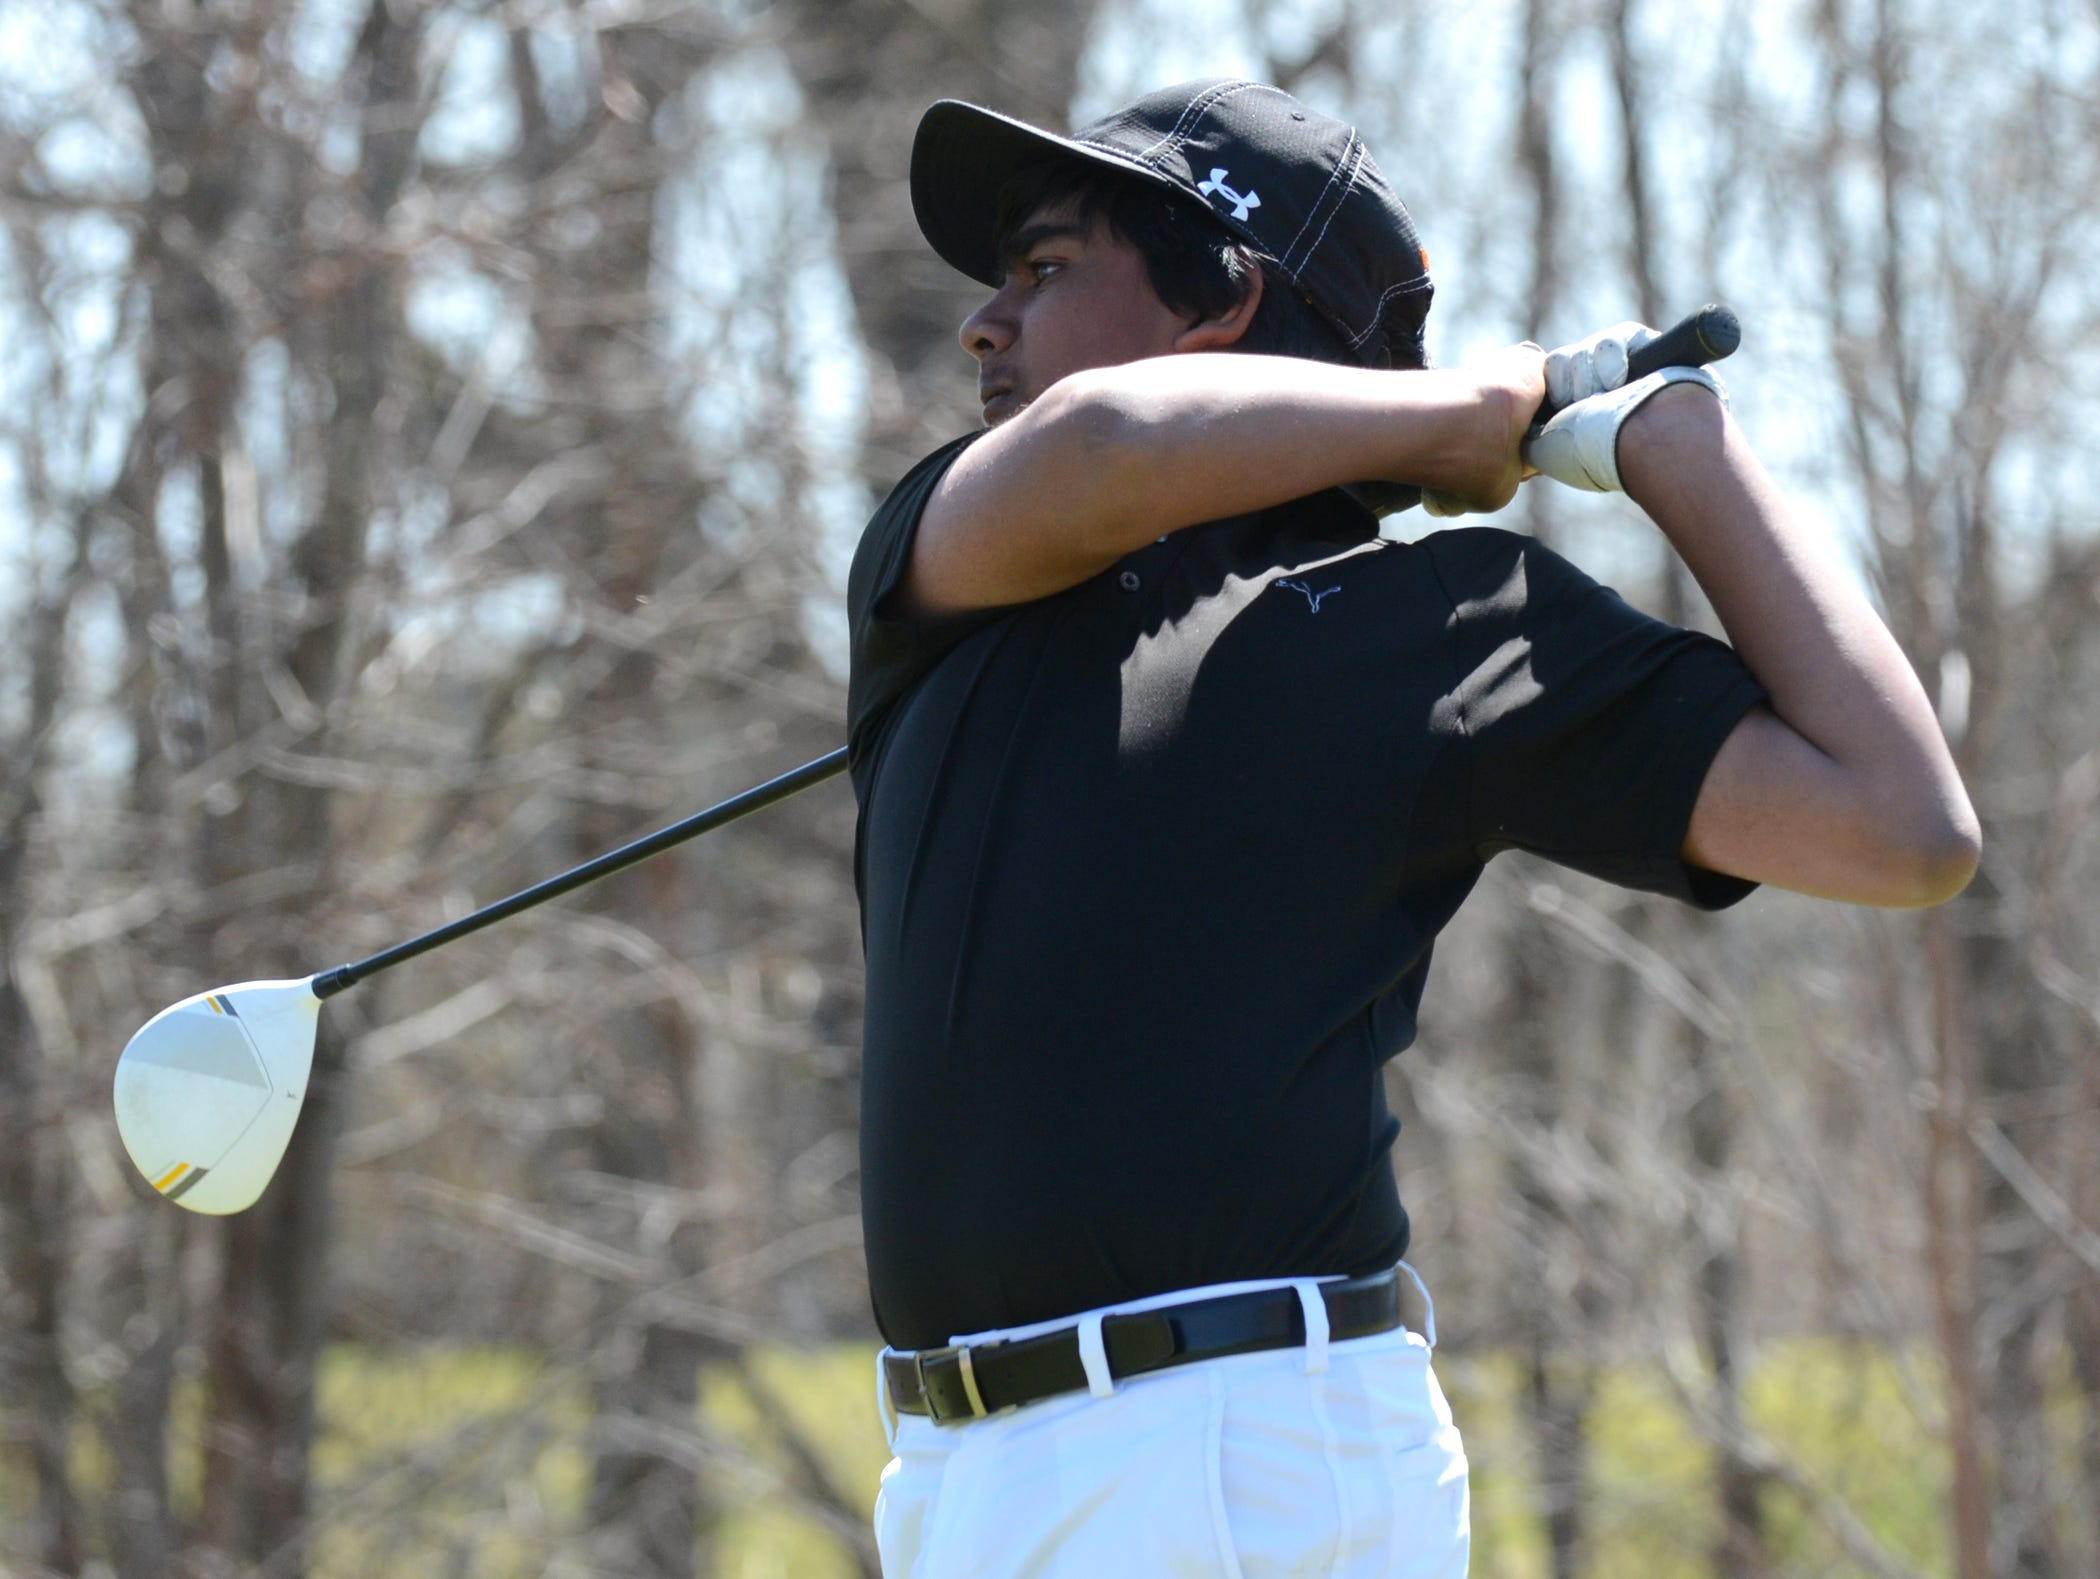 Freshman Abhi Alluri paced Northville in the district tourney in 12th place with an 18-hole total of 79.